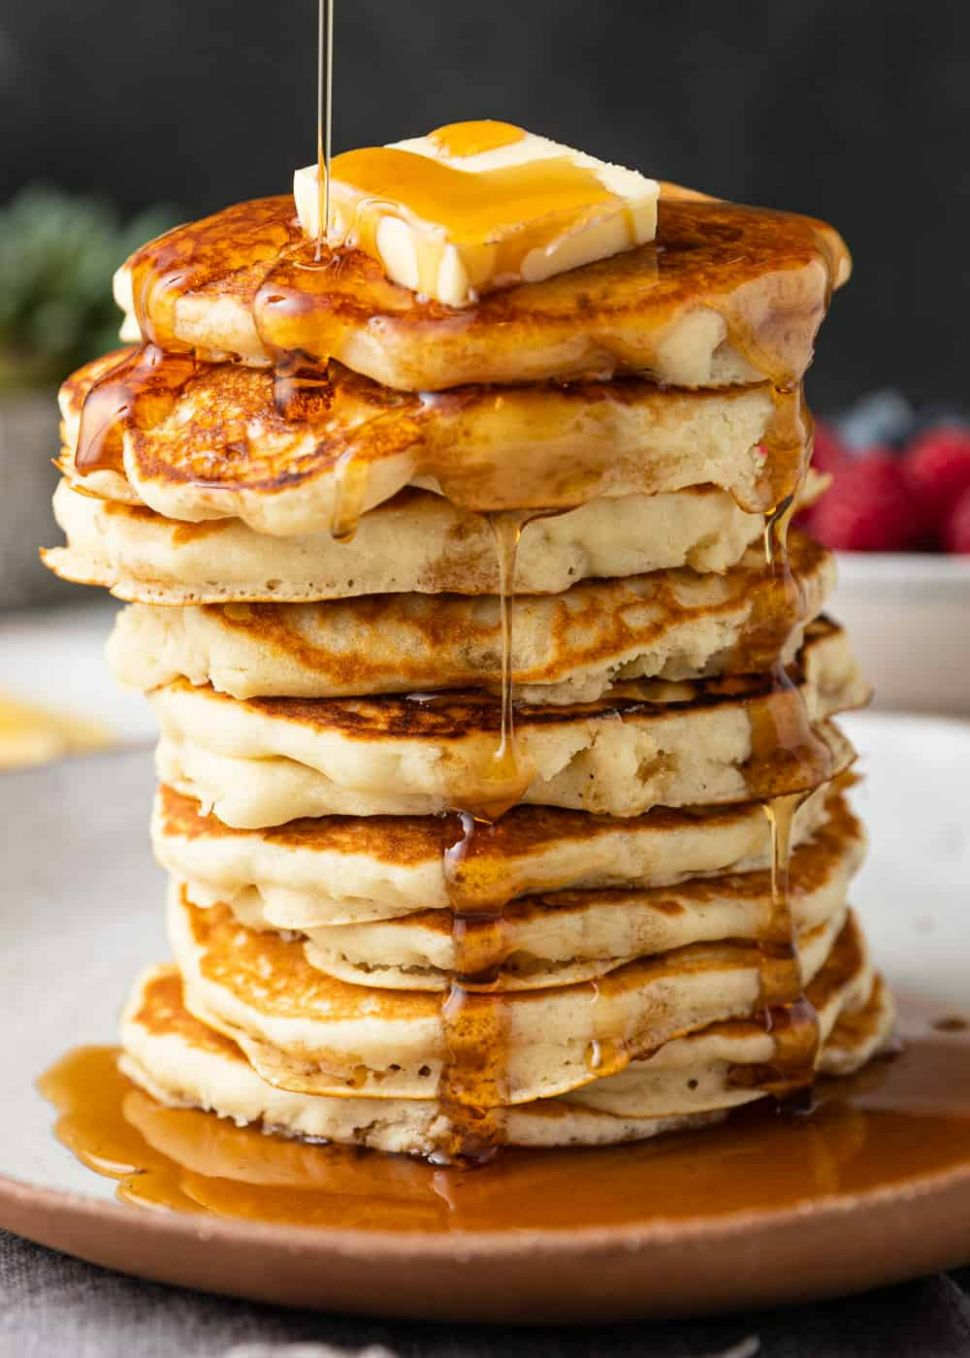 Classic Fluffy Pancake Recipe - Kevin Is Cooking - Breakfast Recipes Using Pancake Mix